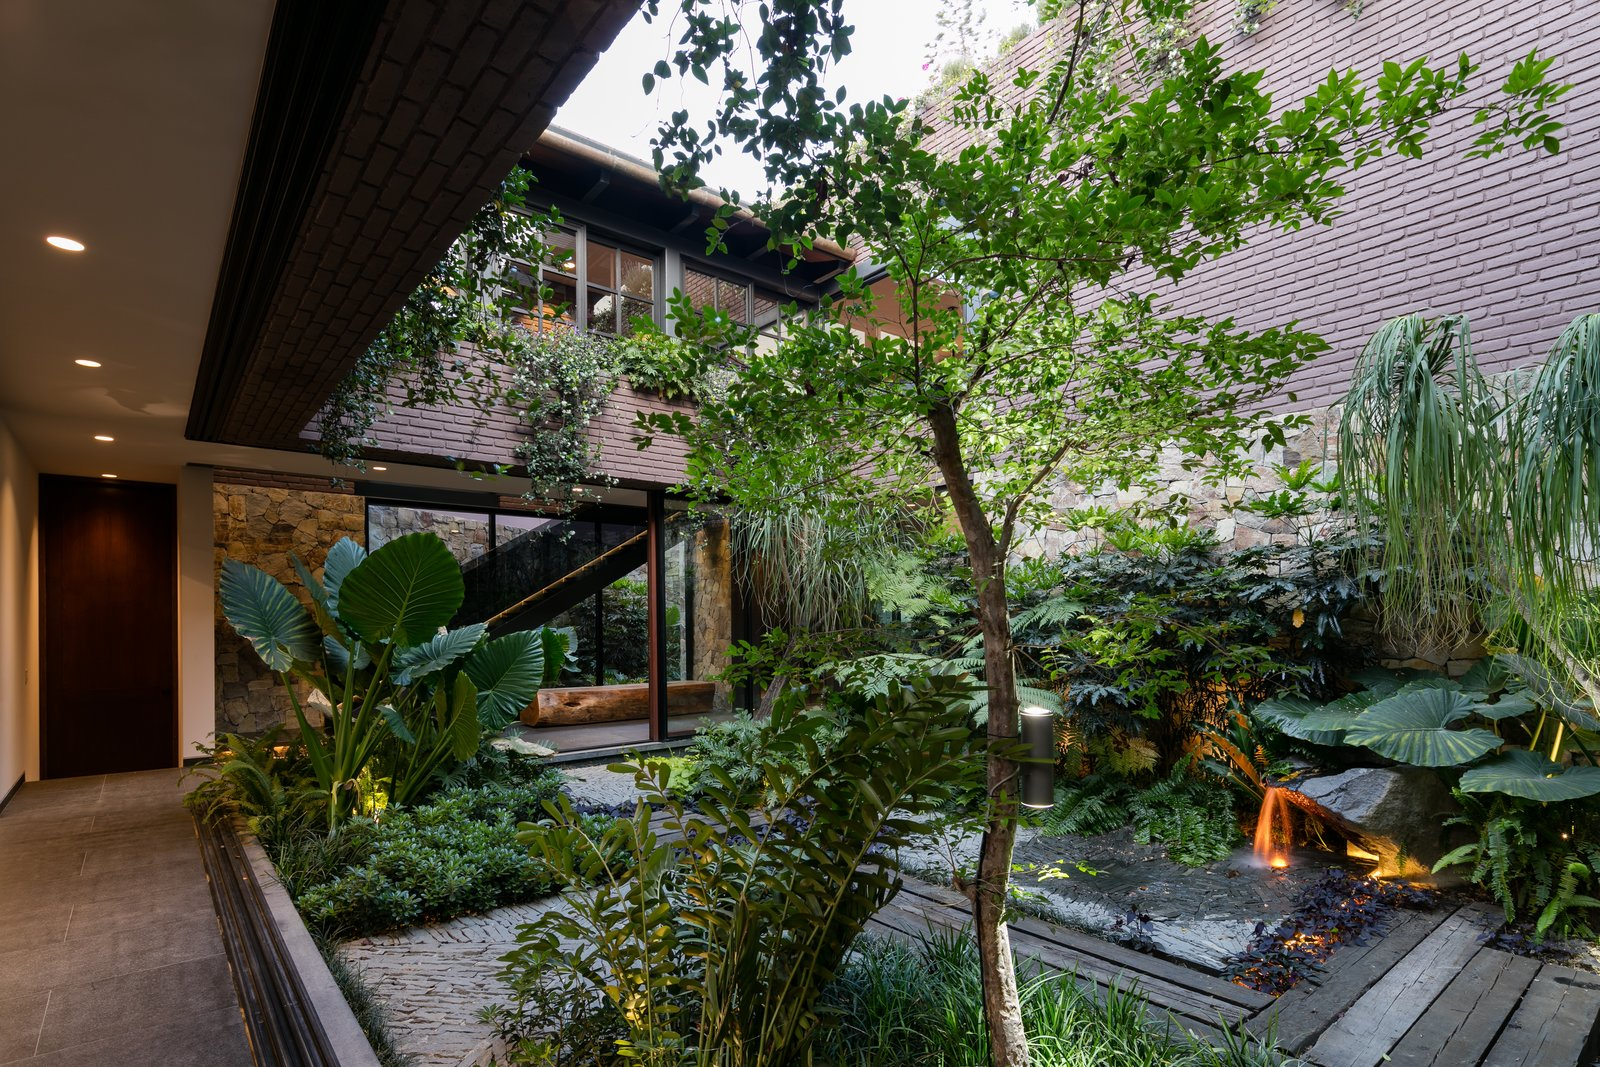 Tagged: Flowers, Shrubs, Grass, Trees, Garden, Standard Construction Pools, Tubs, Shower, Landscape Lighting, Metal Fences, Wall, and Wood Fences, Wall.  Casa OM1 by Santiago Rivero